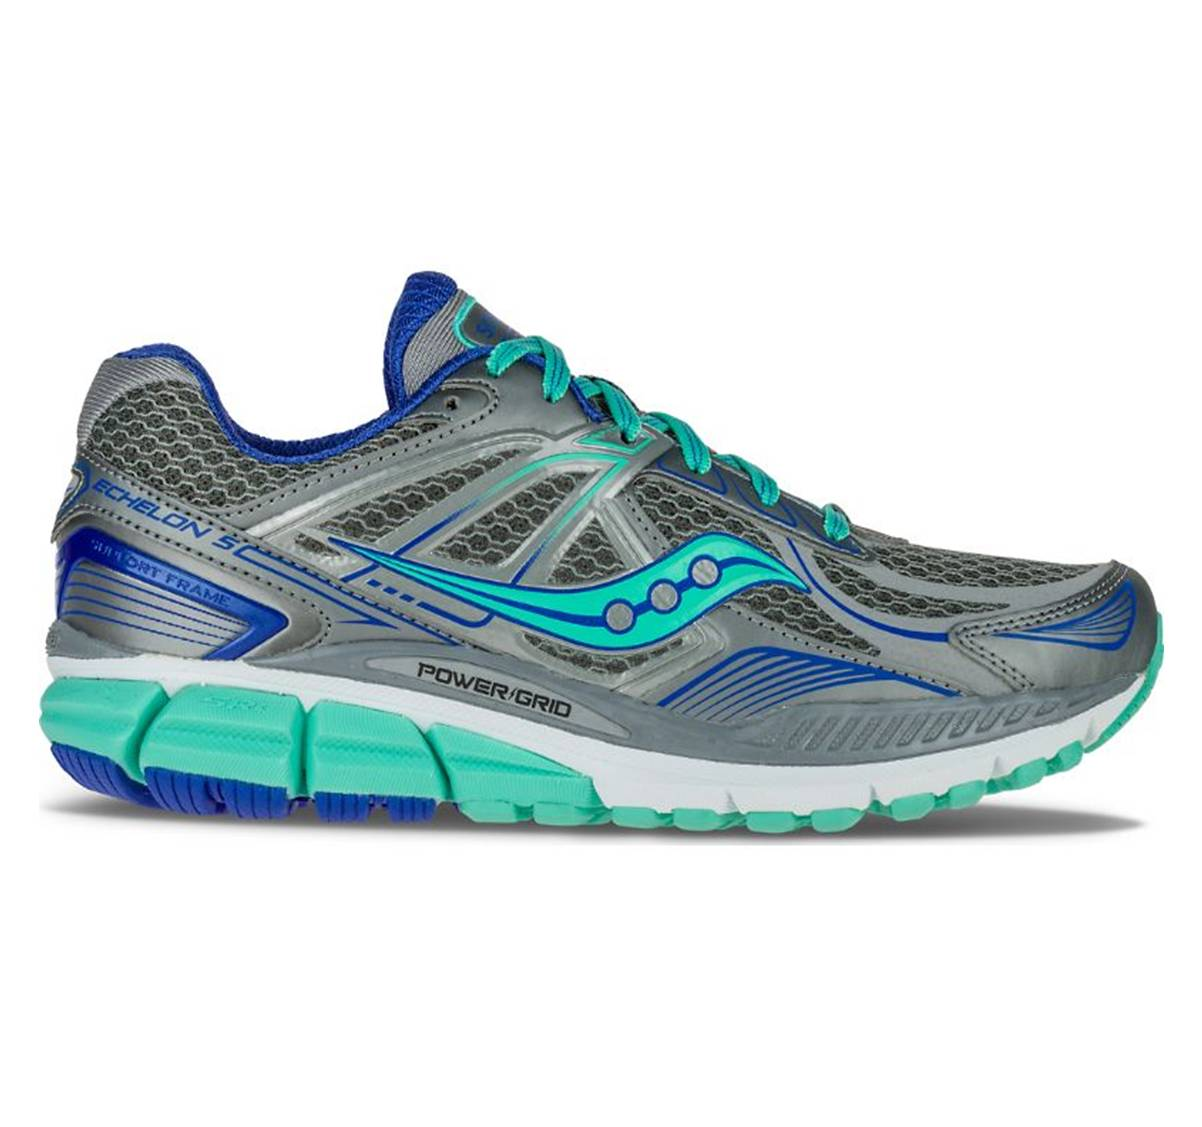 Saucony Echelon 5 Running Shoe GreyMintBlue Women Shoes [F